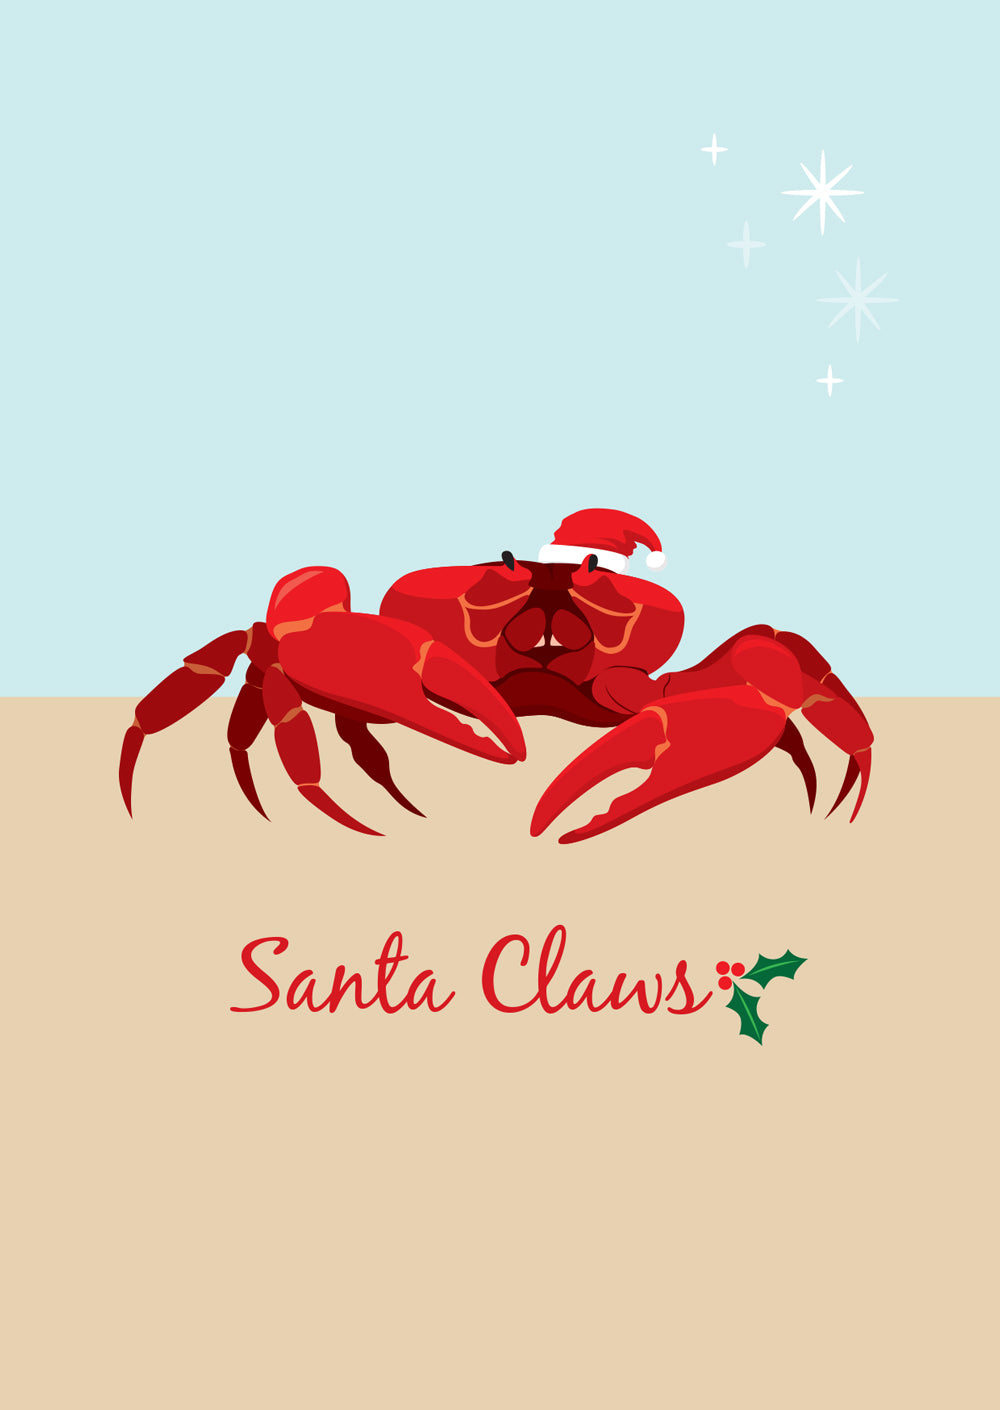 Christmas Card - Christmas Island Red Crab Santa Claws